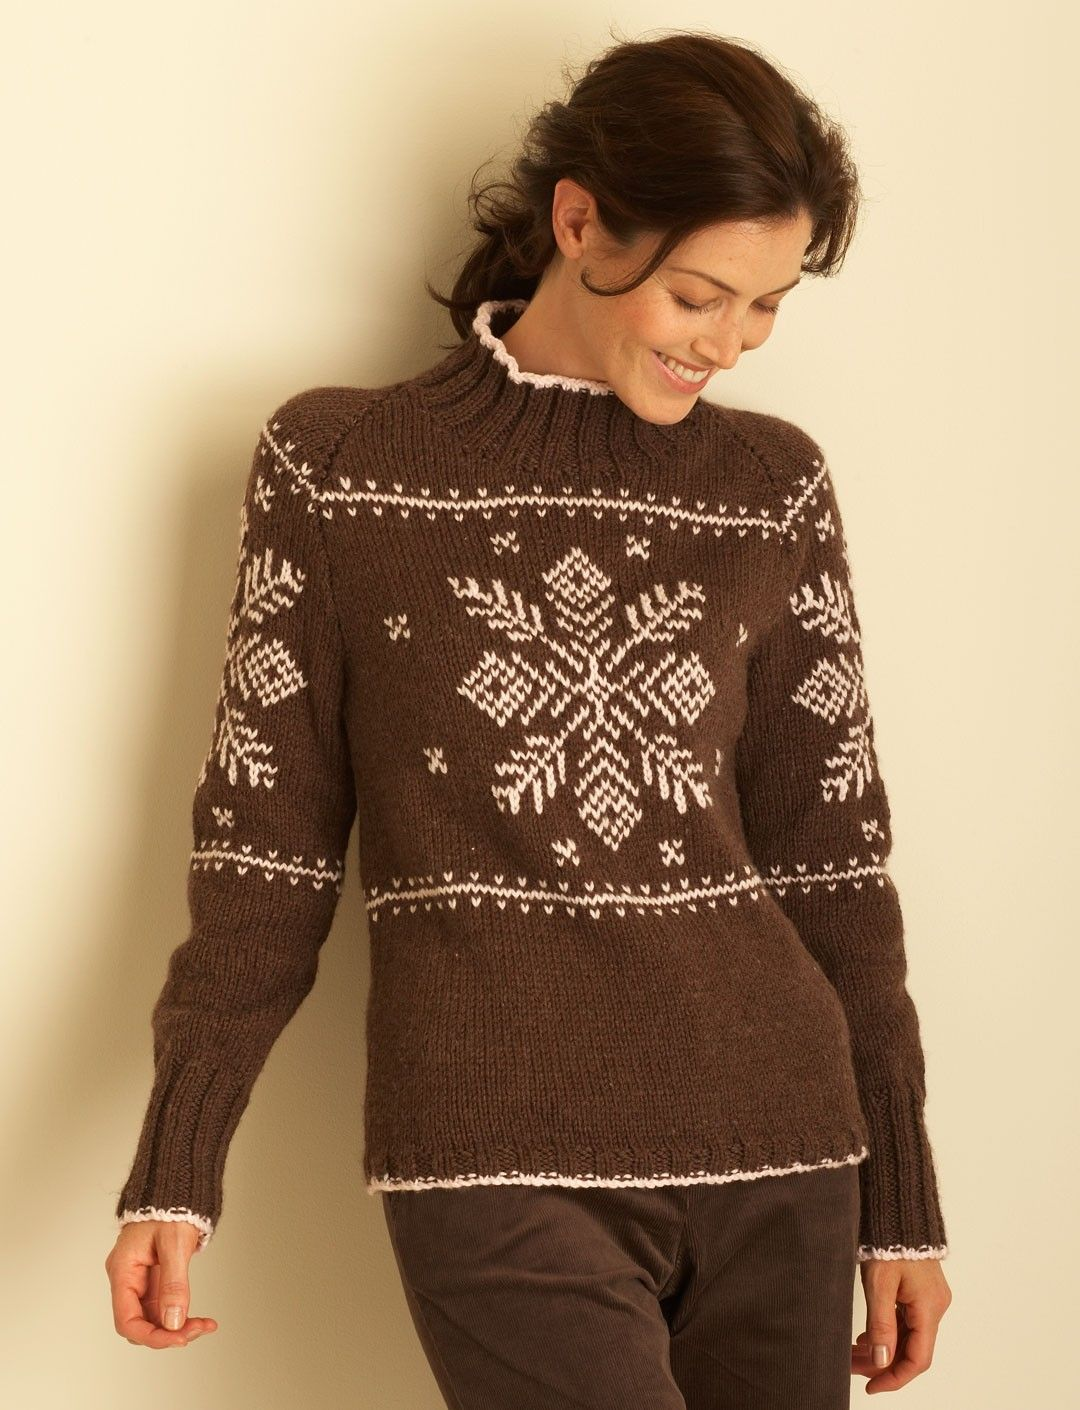 e7200573c572d Bernat Snowflake Sweater. Yarnspirations.com. Woman s knitted jumper.  iBooks  Evernote. 10 ply 198m  100g x 4 Mc   1 contrast.